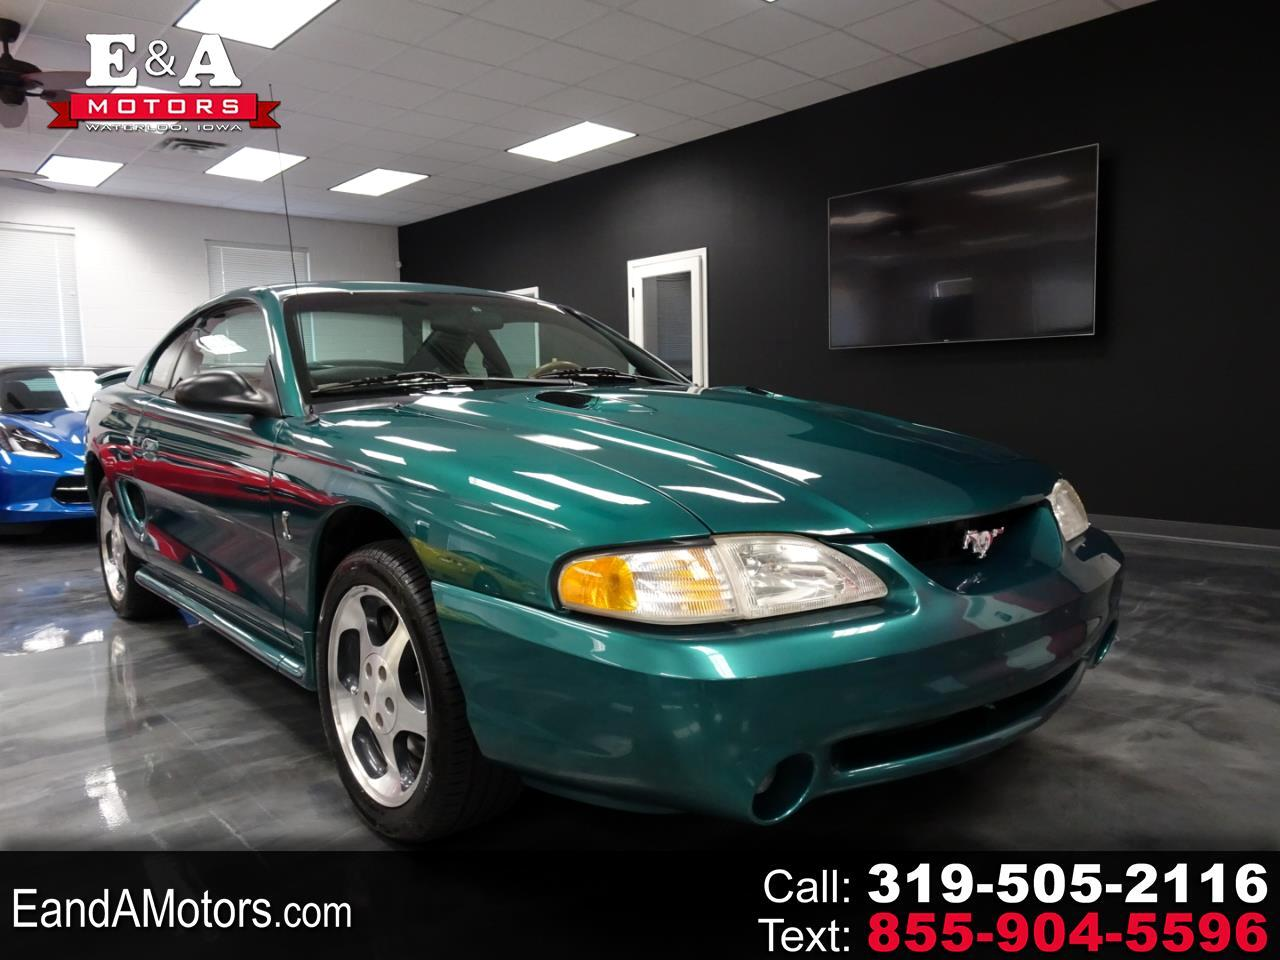 Ford Mustang Cobra Coupe 1997